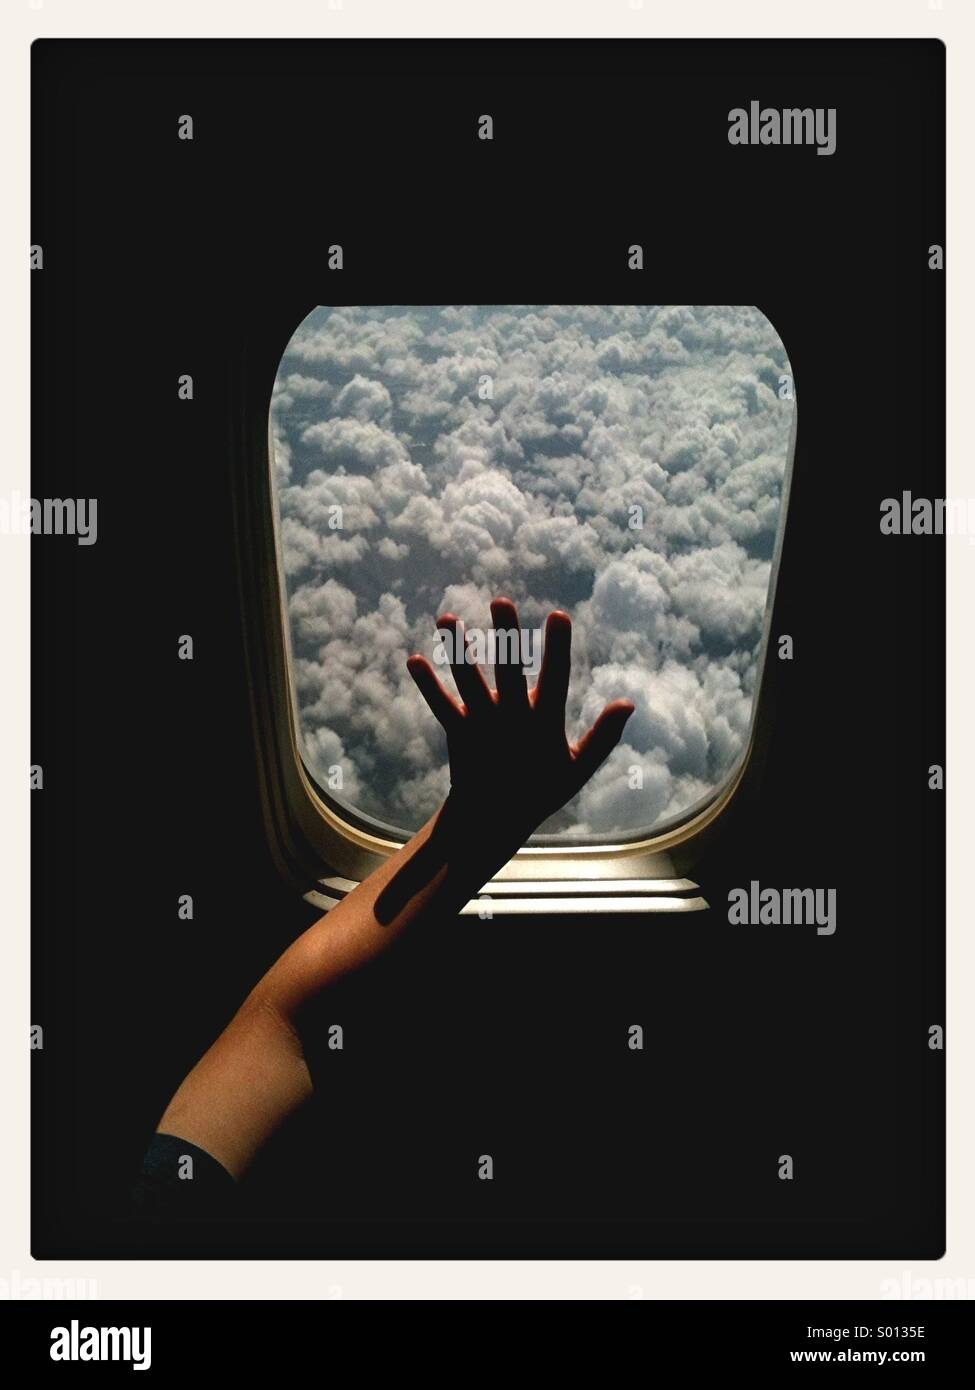 Boy touching window of airplane in flight with clouds in view. - Stock Image